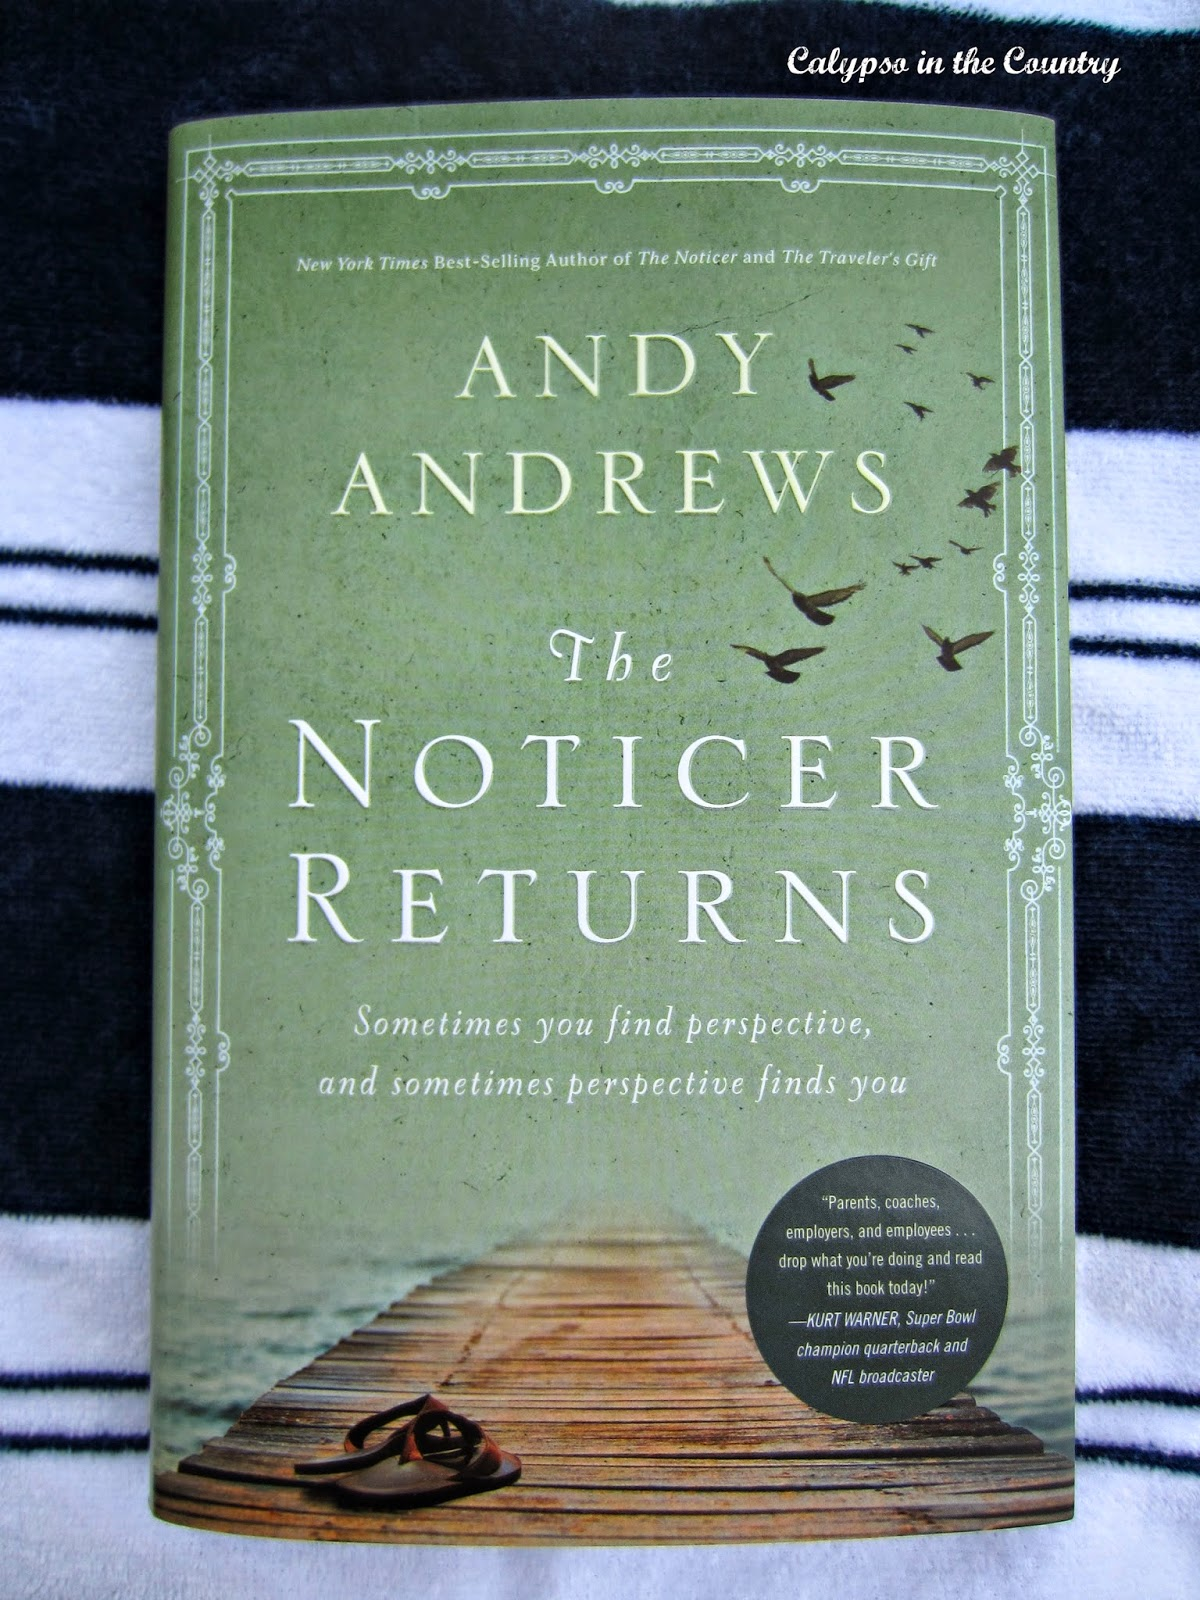 The Noticer Returns by Andy Andrews - Another great book in a series!